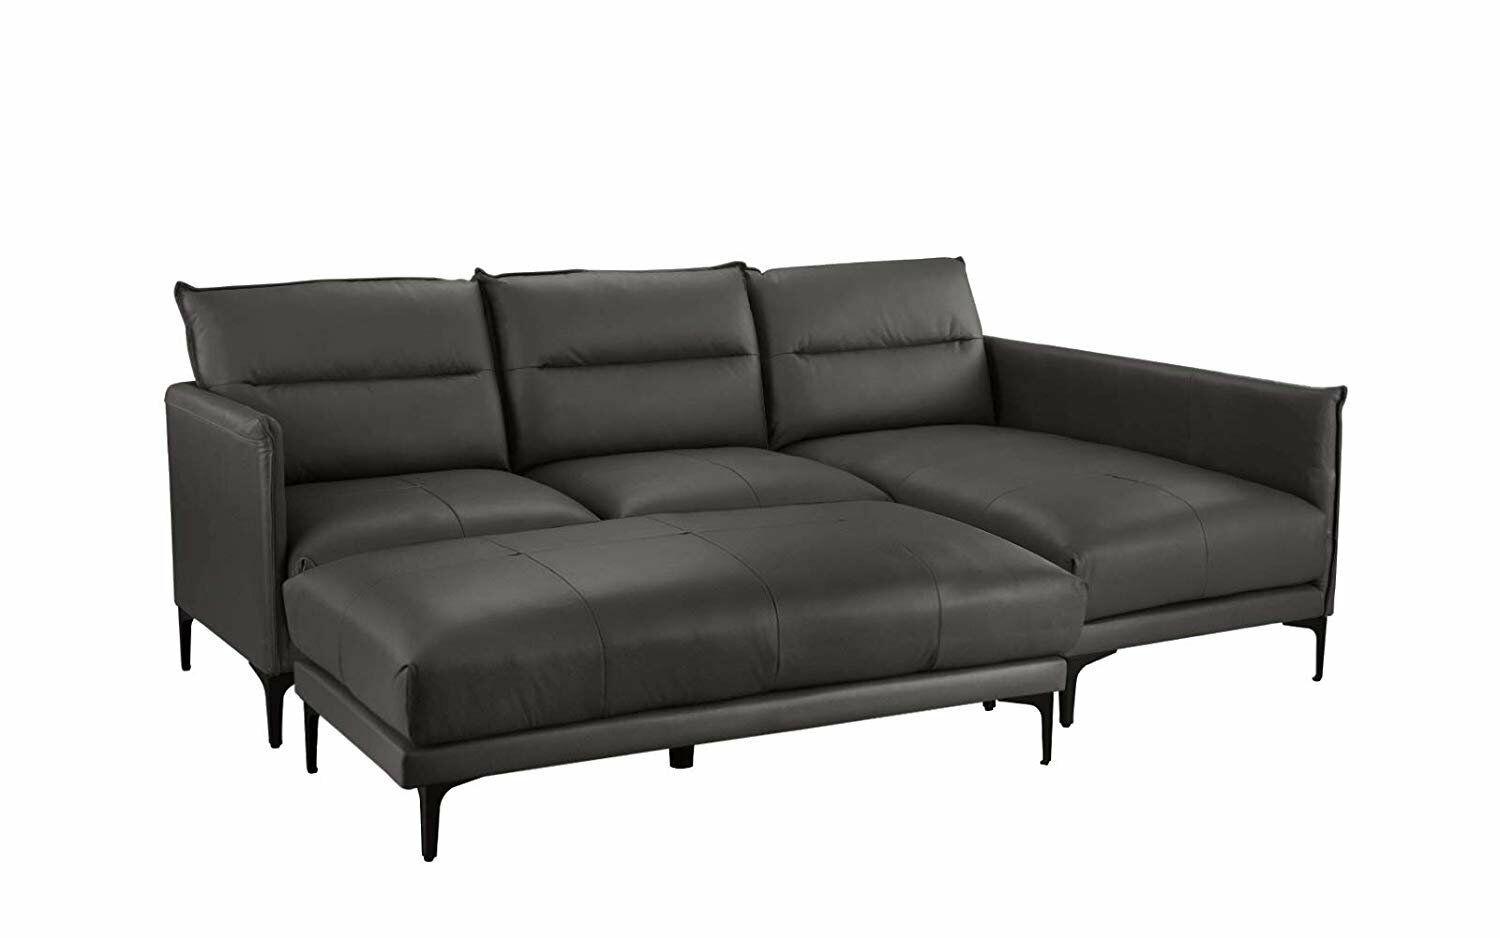 Mid Century Sectional Sofa, Leather L-Shape Couch with Rectangular Ottoman,  Grey